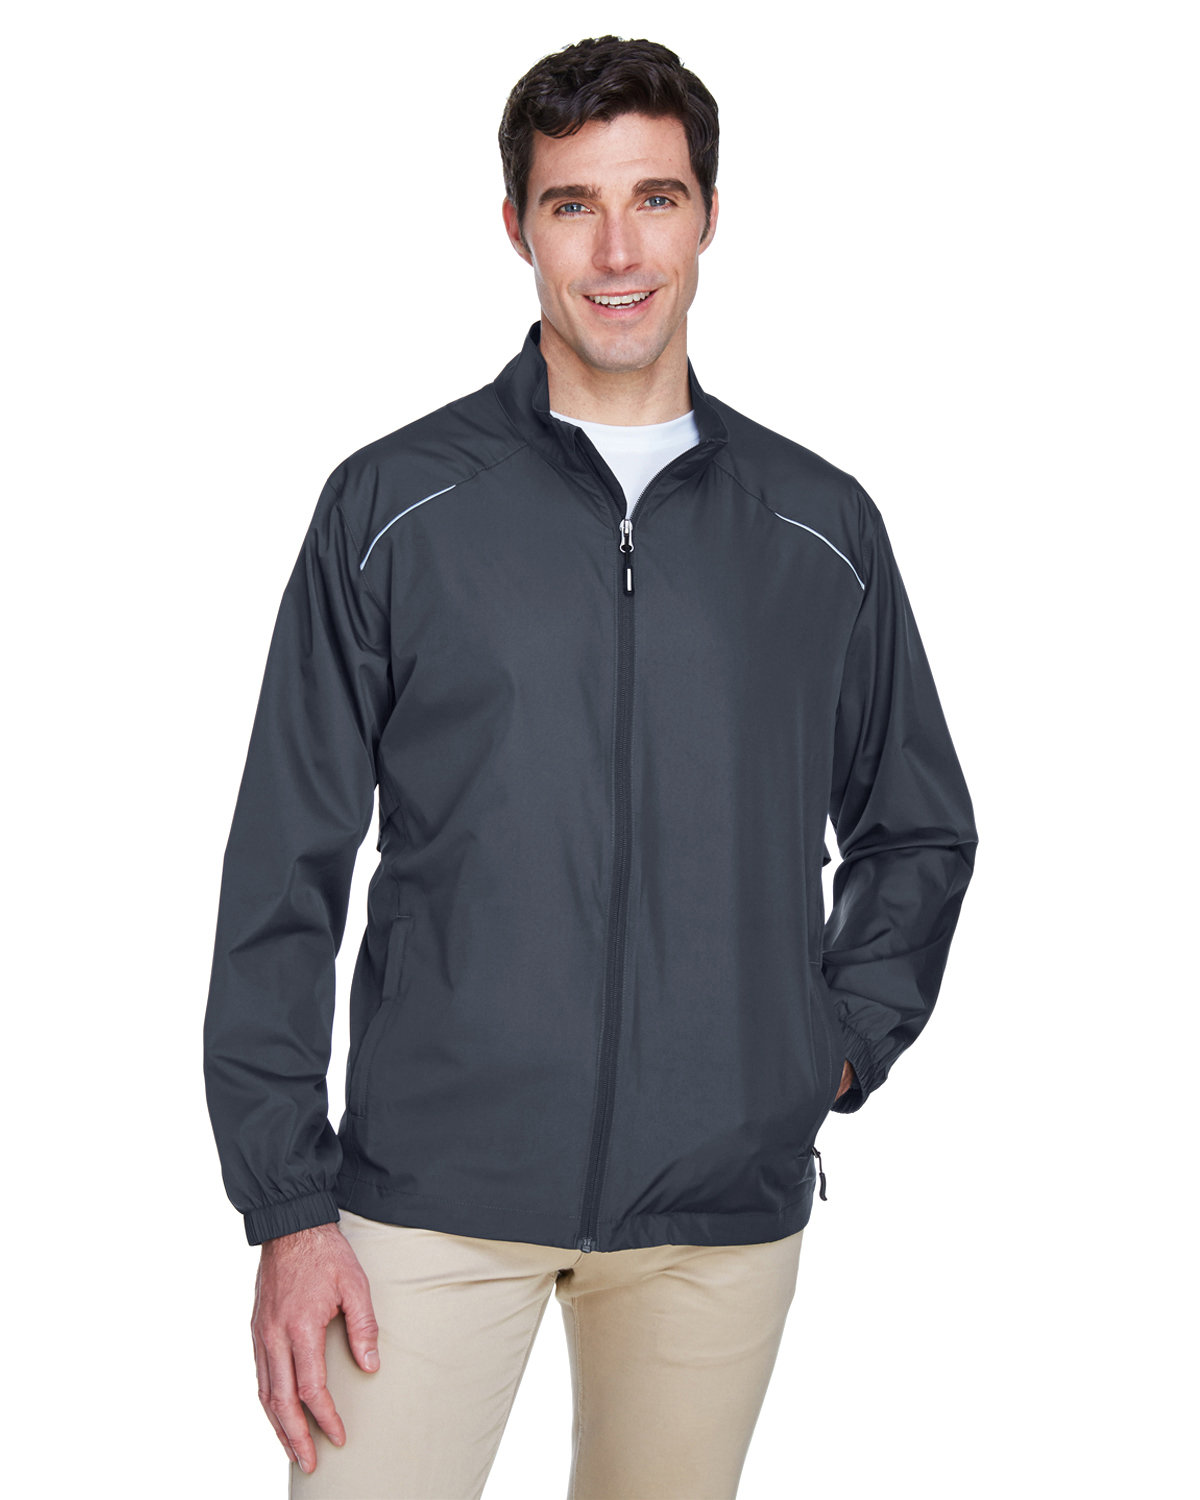 Core 365 Men's Motivate Unlined Lightweight Jacket CARBON